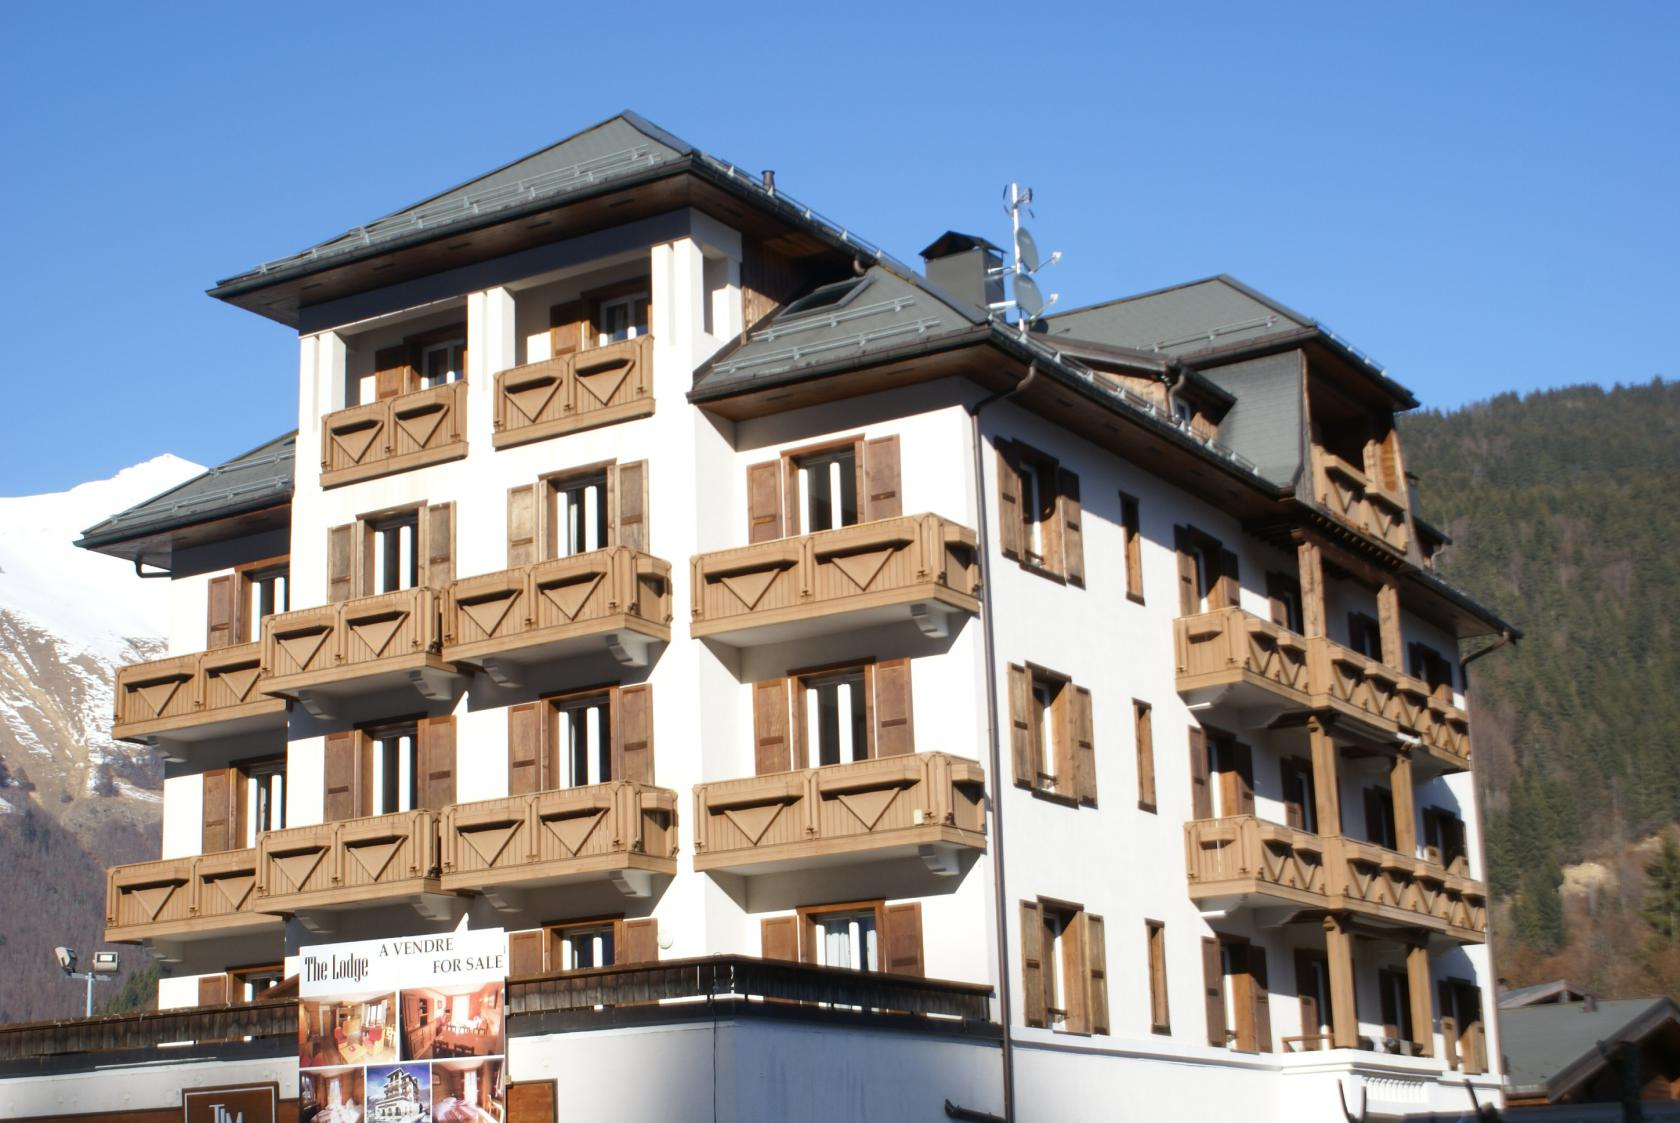 Apartment near Pistes and Shops in Morzine'